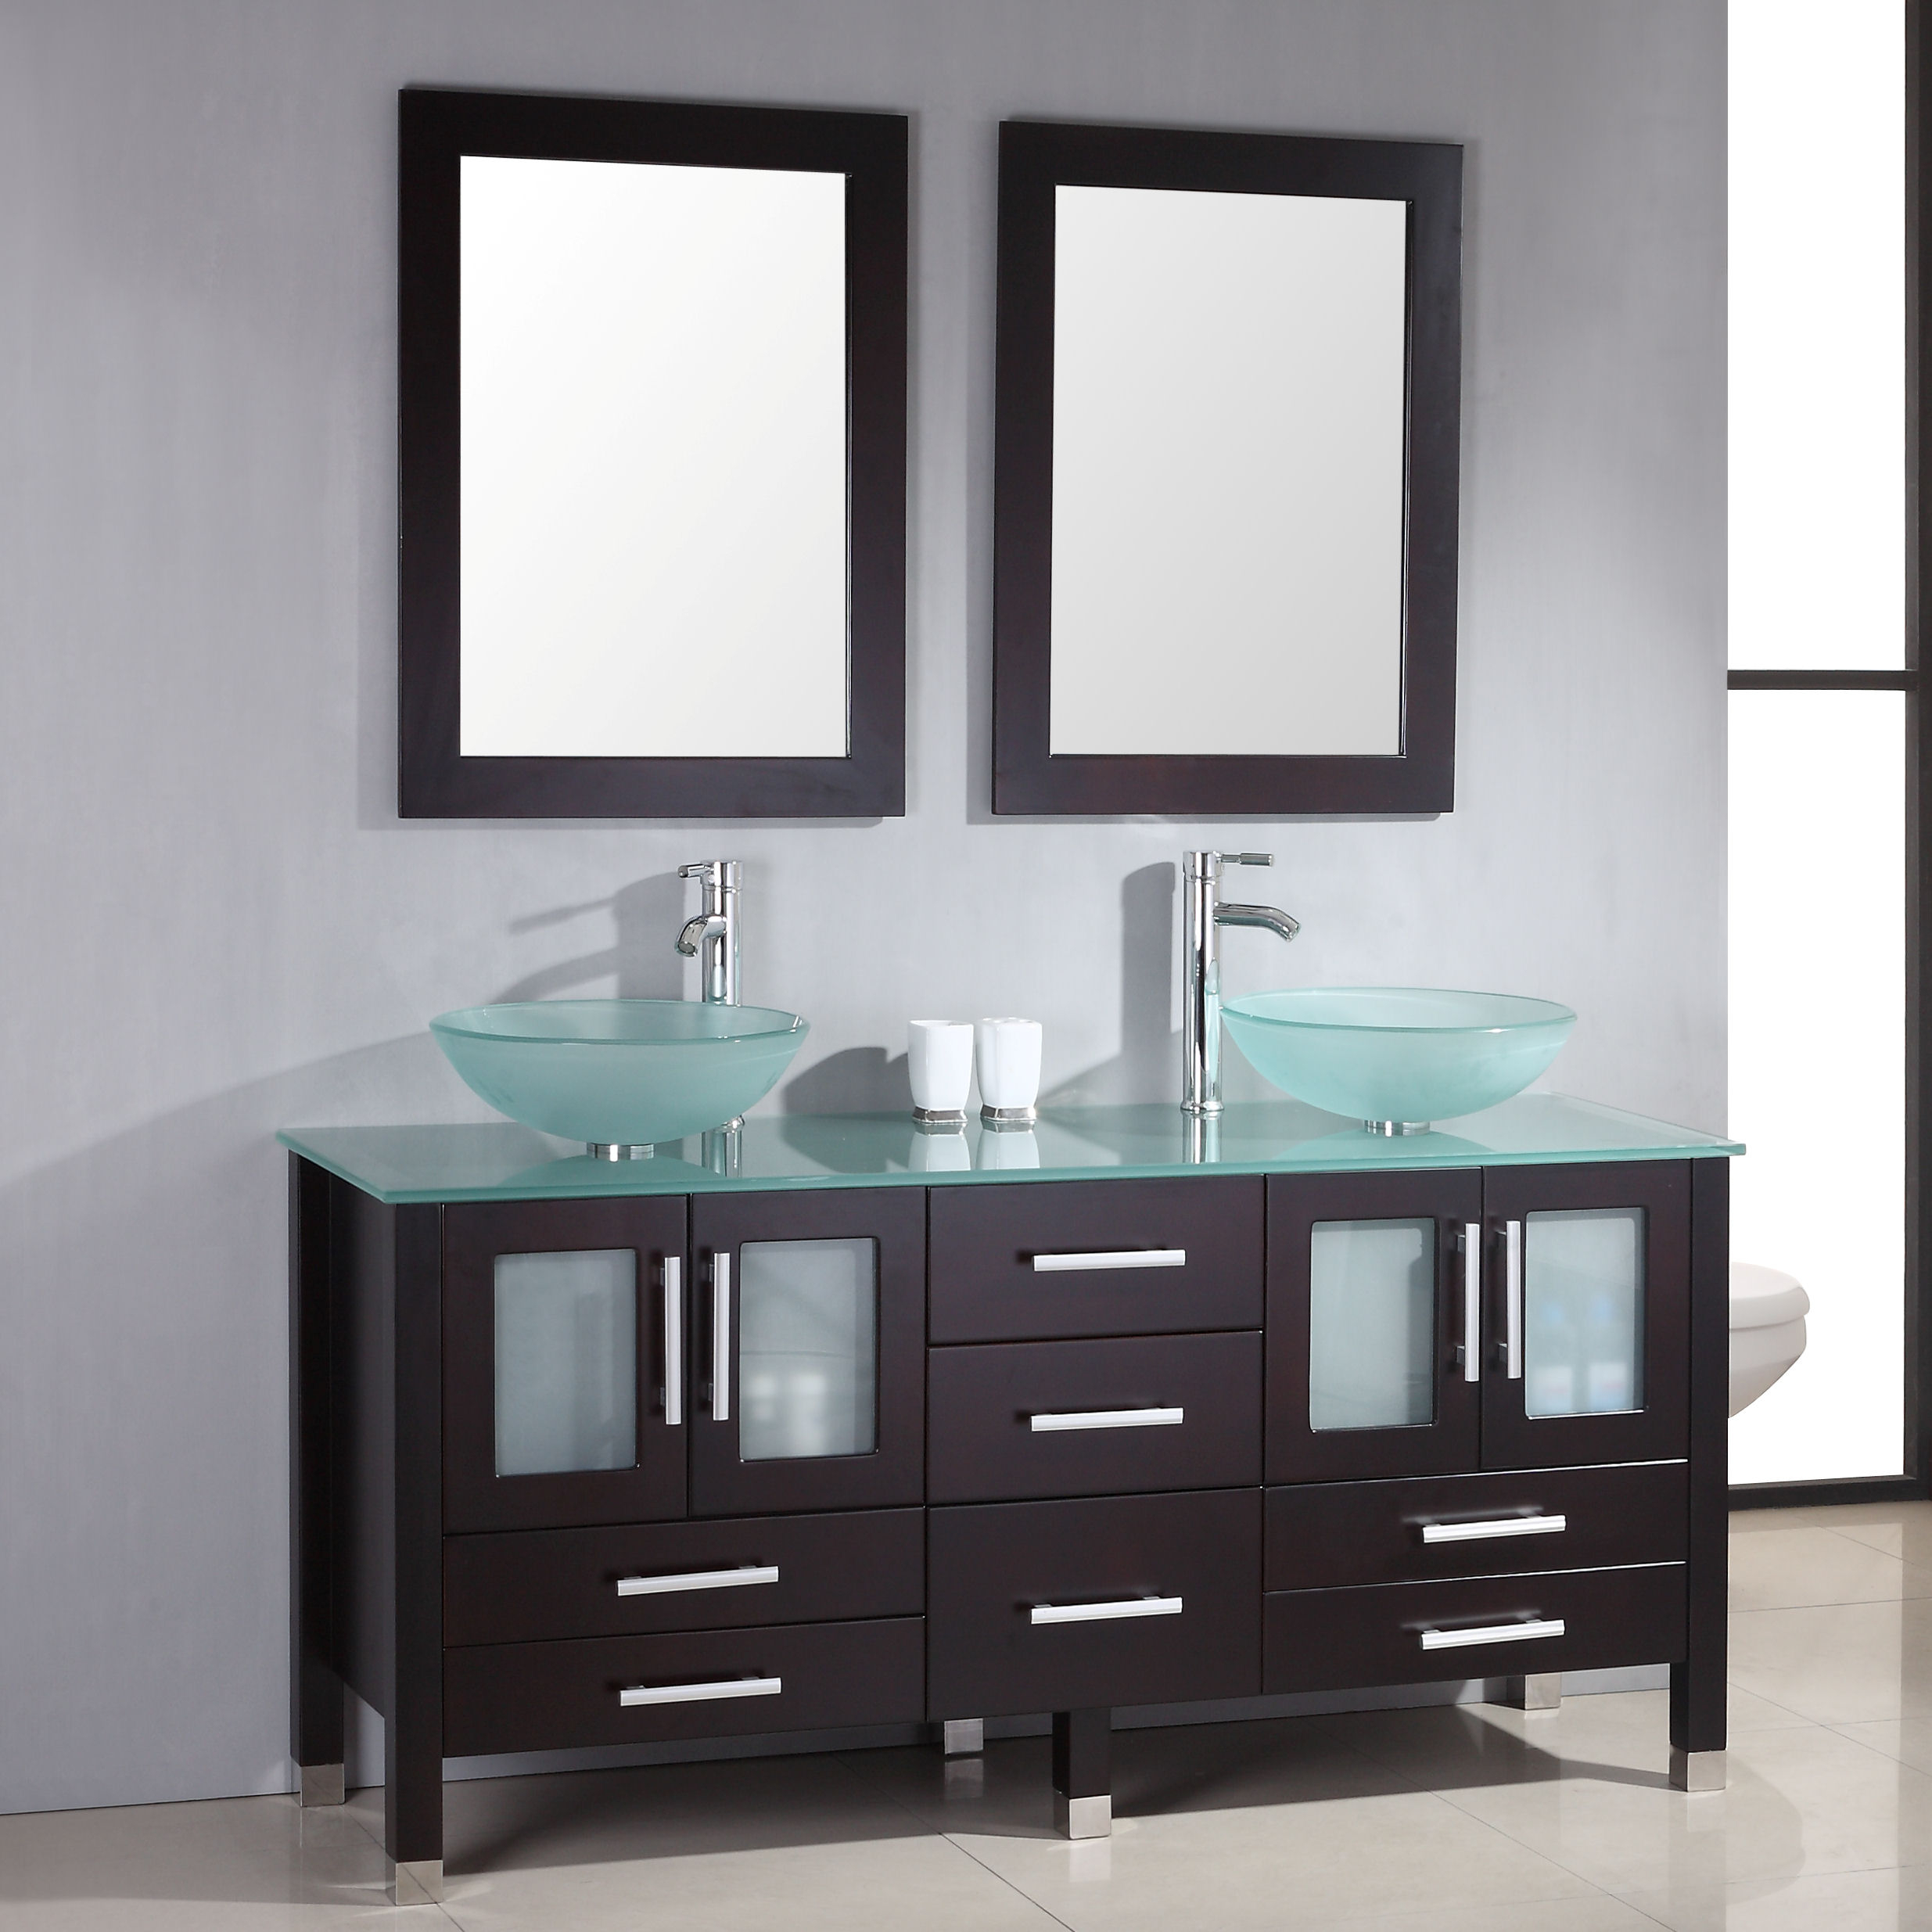 71 Solid Wood Glass Double Vessel Sink Vanity Set With Polished